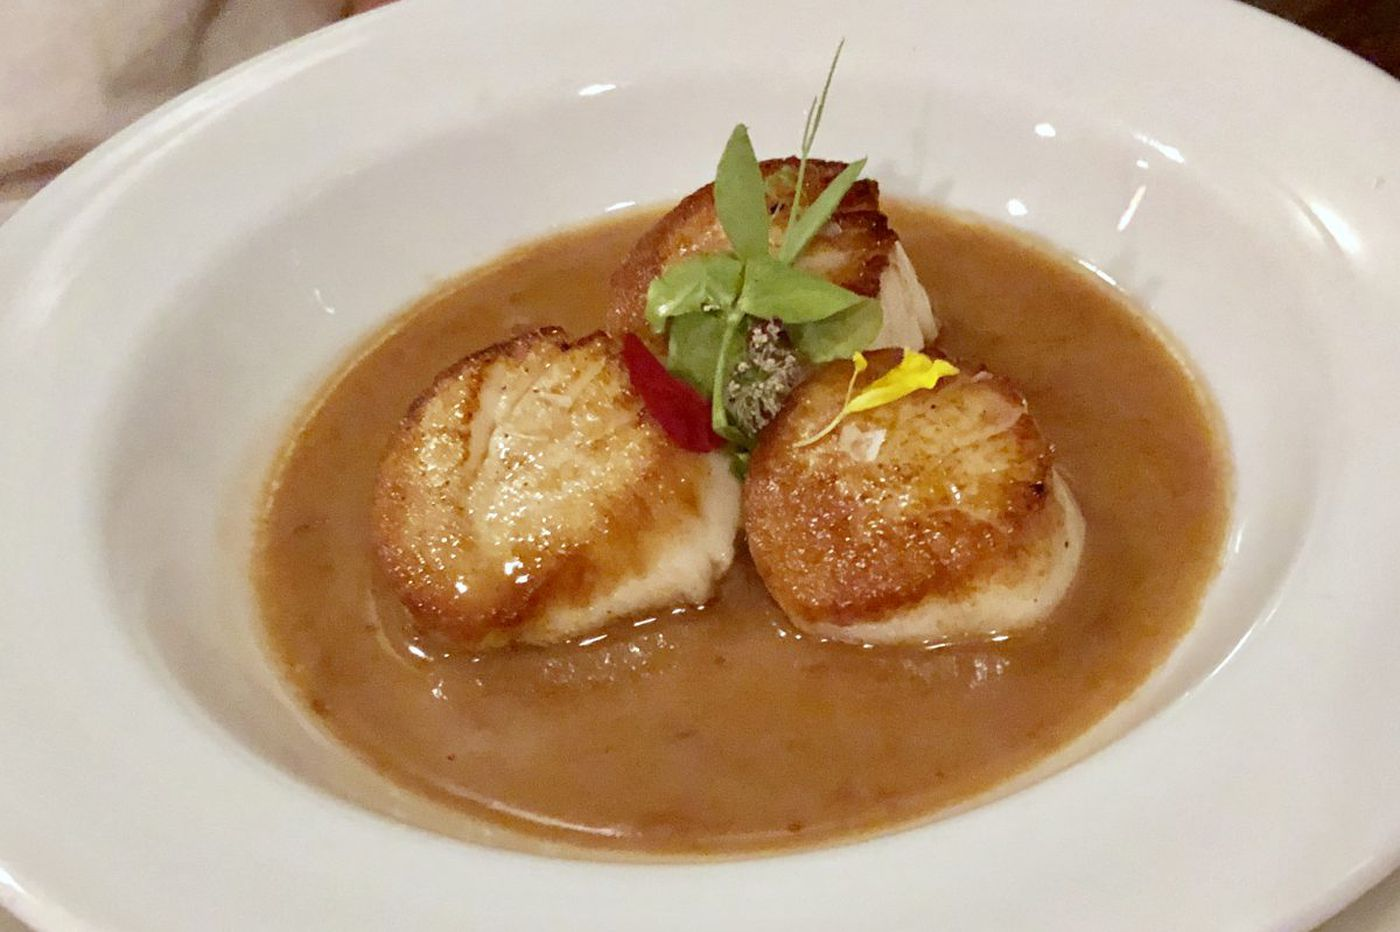 A beer cuisine scallop classic at Monk's Cafe